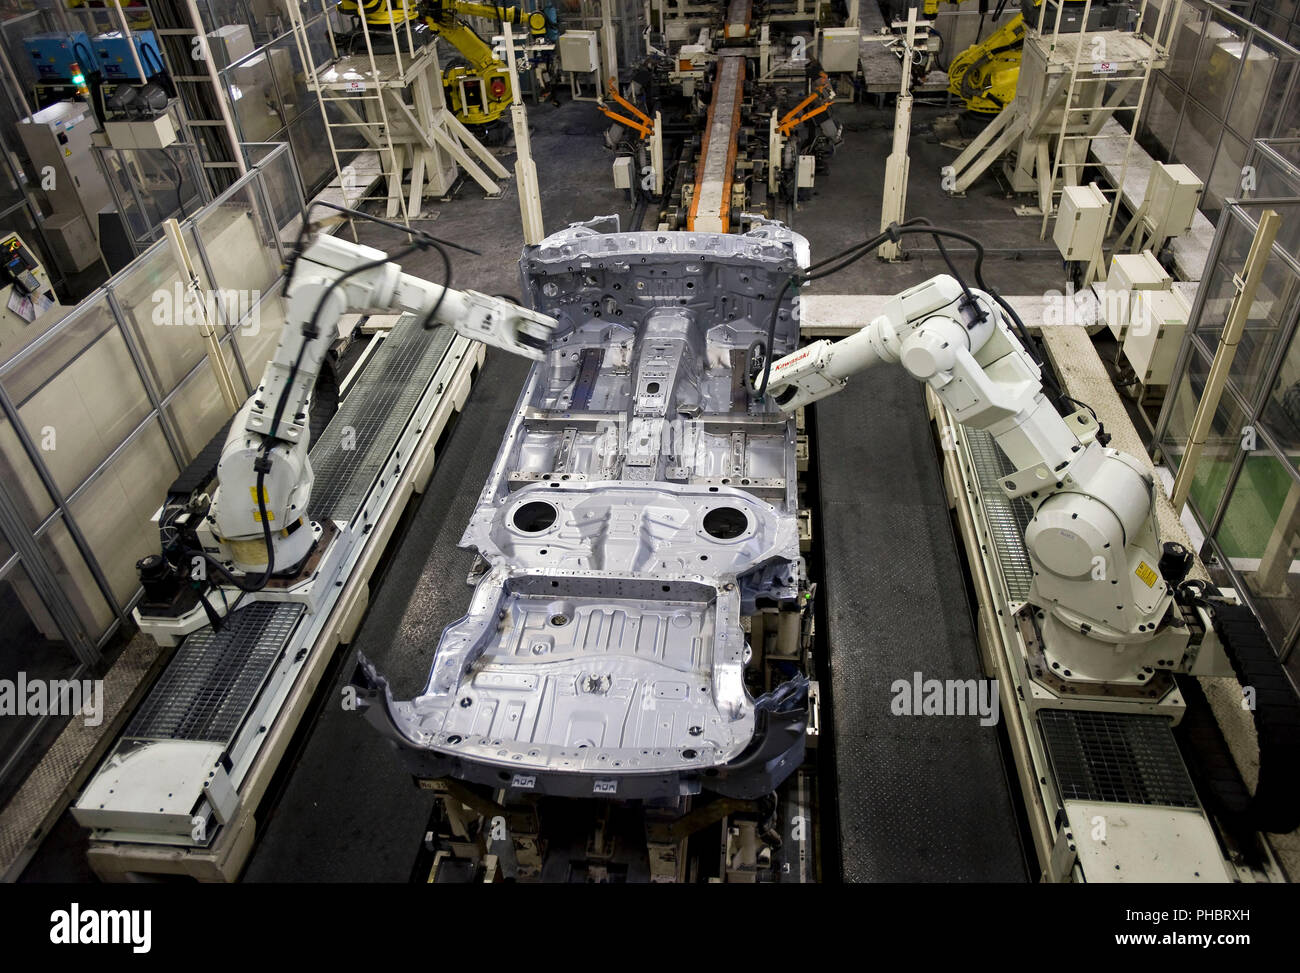 Roboter arbeiten an einem Fahrzeug bei Nissan Motor Co. s Montagewerk in Tochigi, Japan am Donnerstag, den 12. November 2009. Fotograf: Robert Gilhooly Stockbild